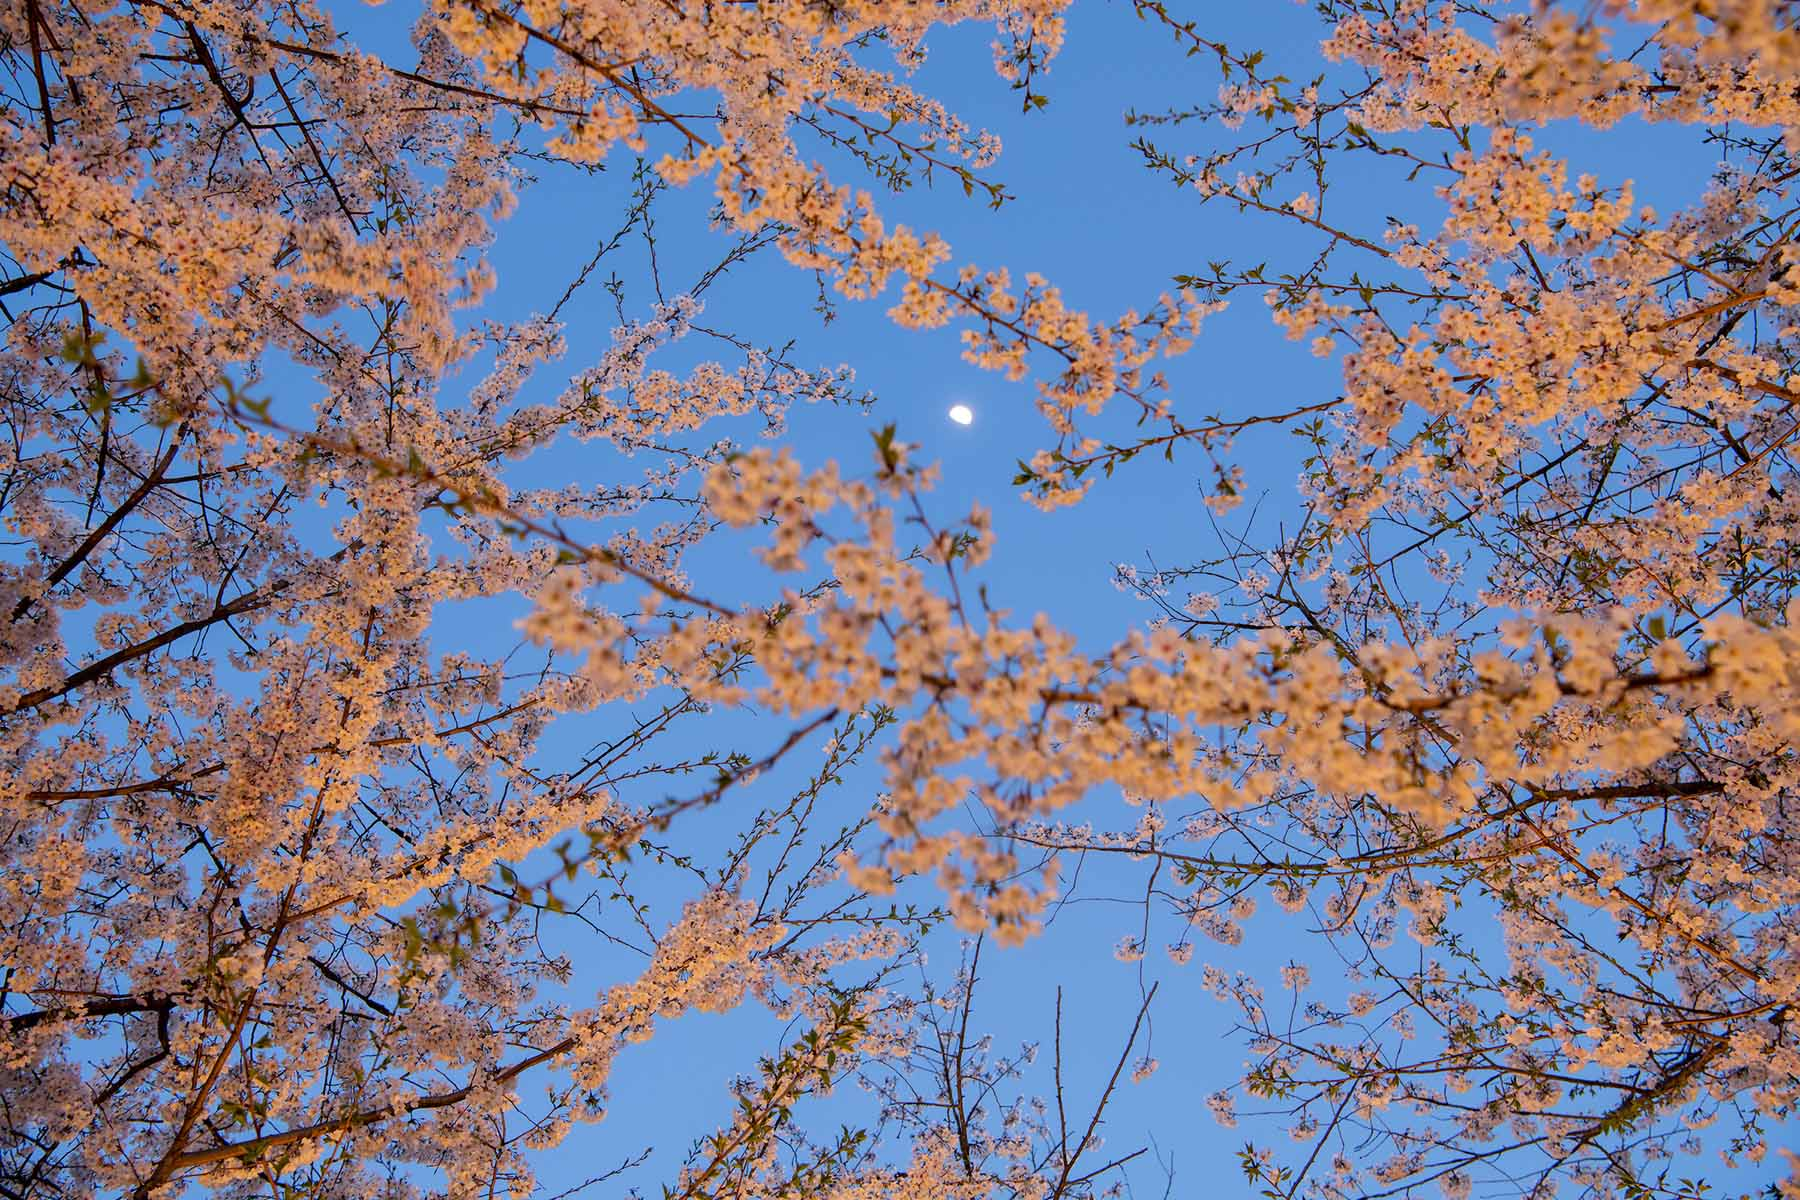 A view of the moon through cherry blossom flowers